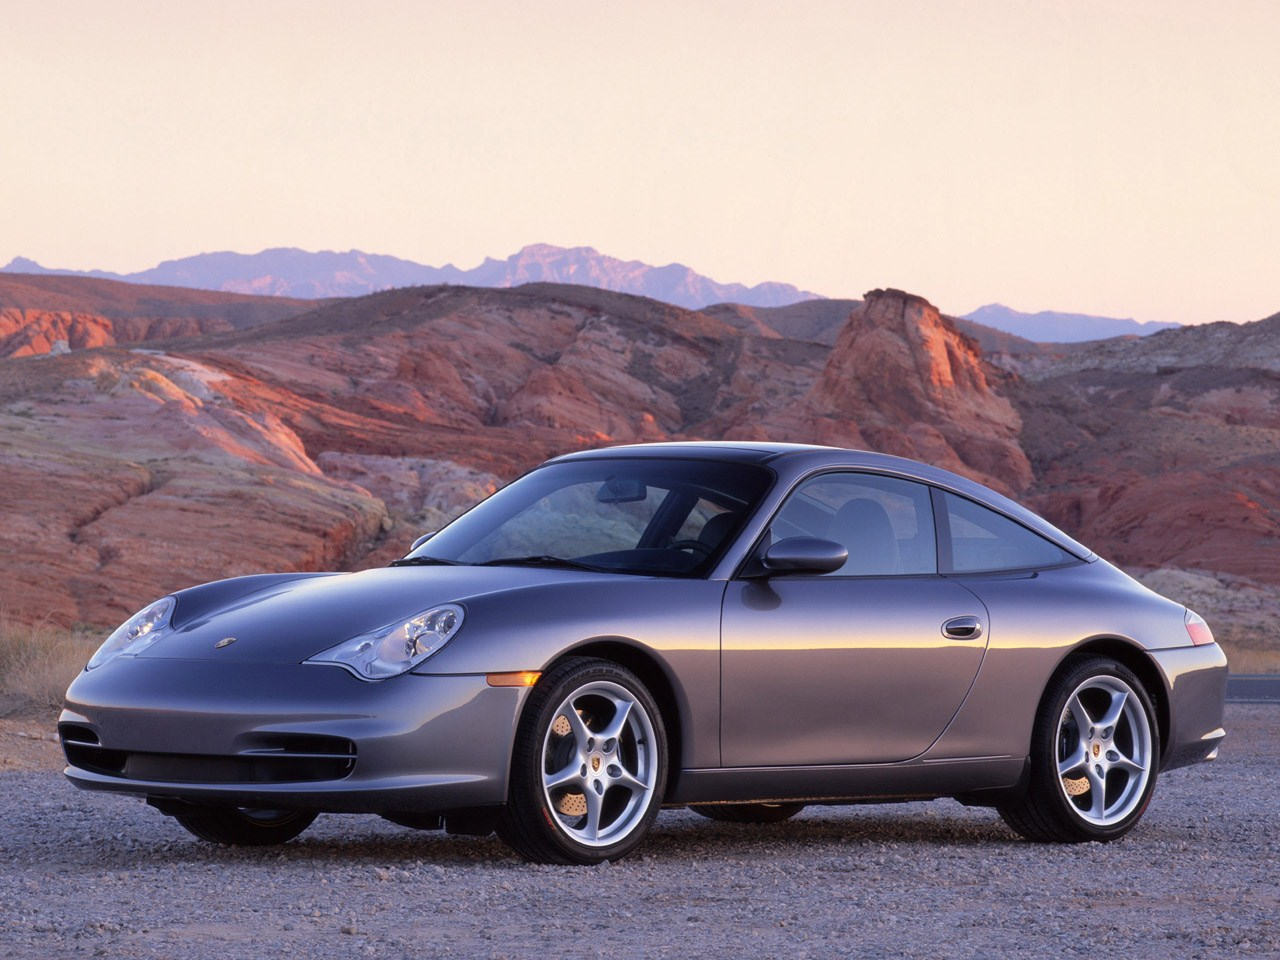 Our Wallpaper Cars Blog Provide 2017 Porsche 960 Wallpapers Car With Cool Hd Photos Woith Various Resolutions 2 Pictures